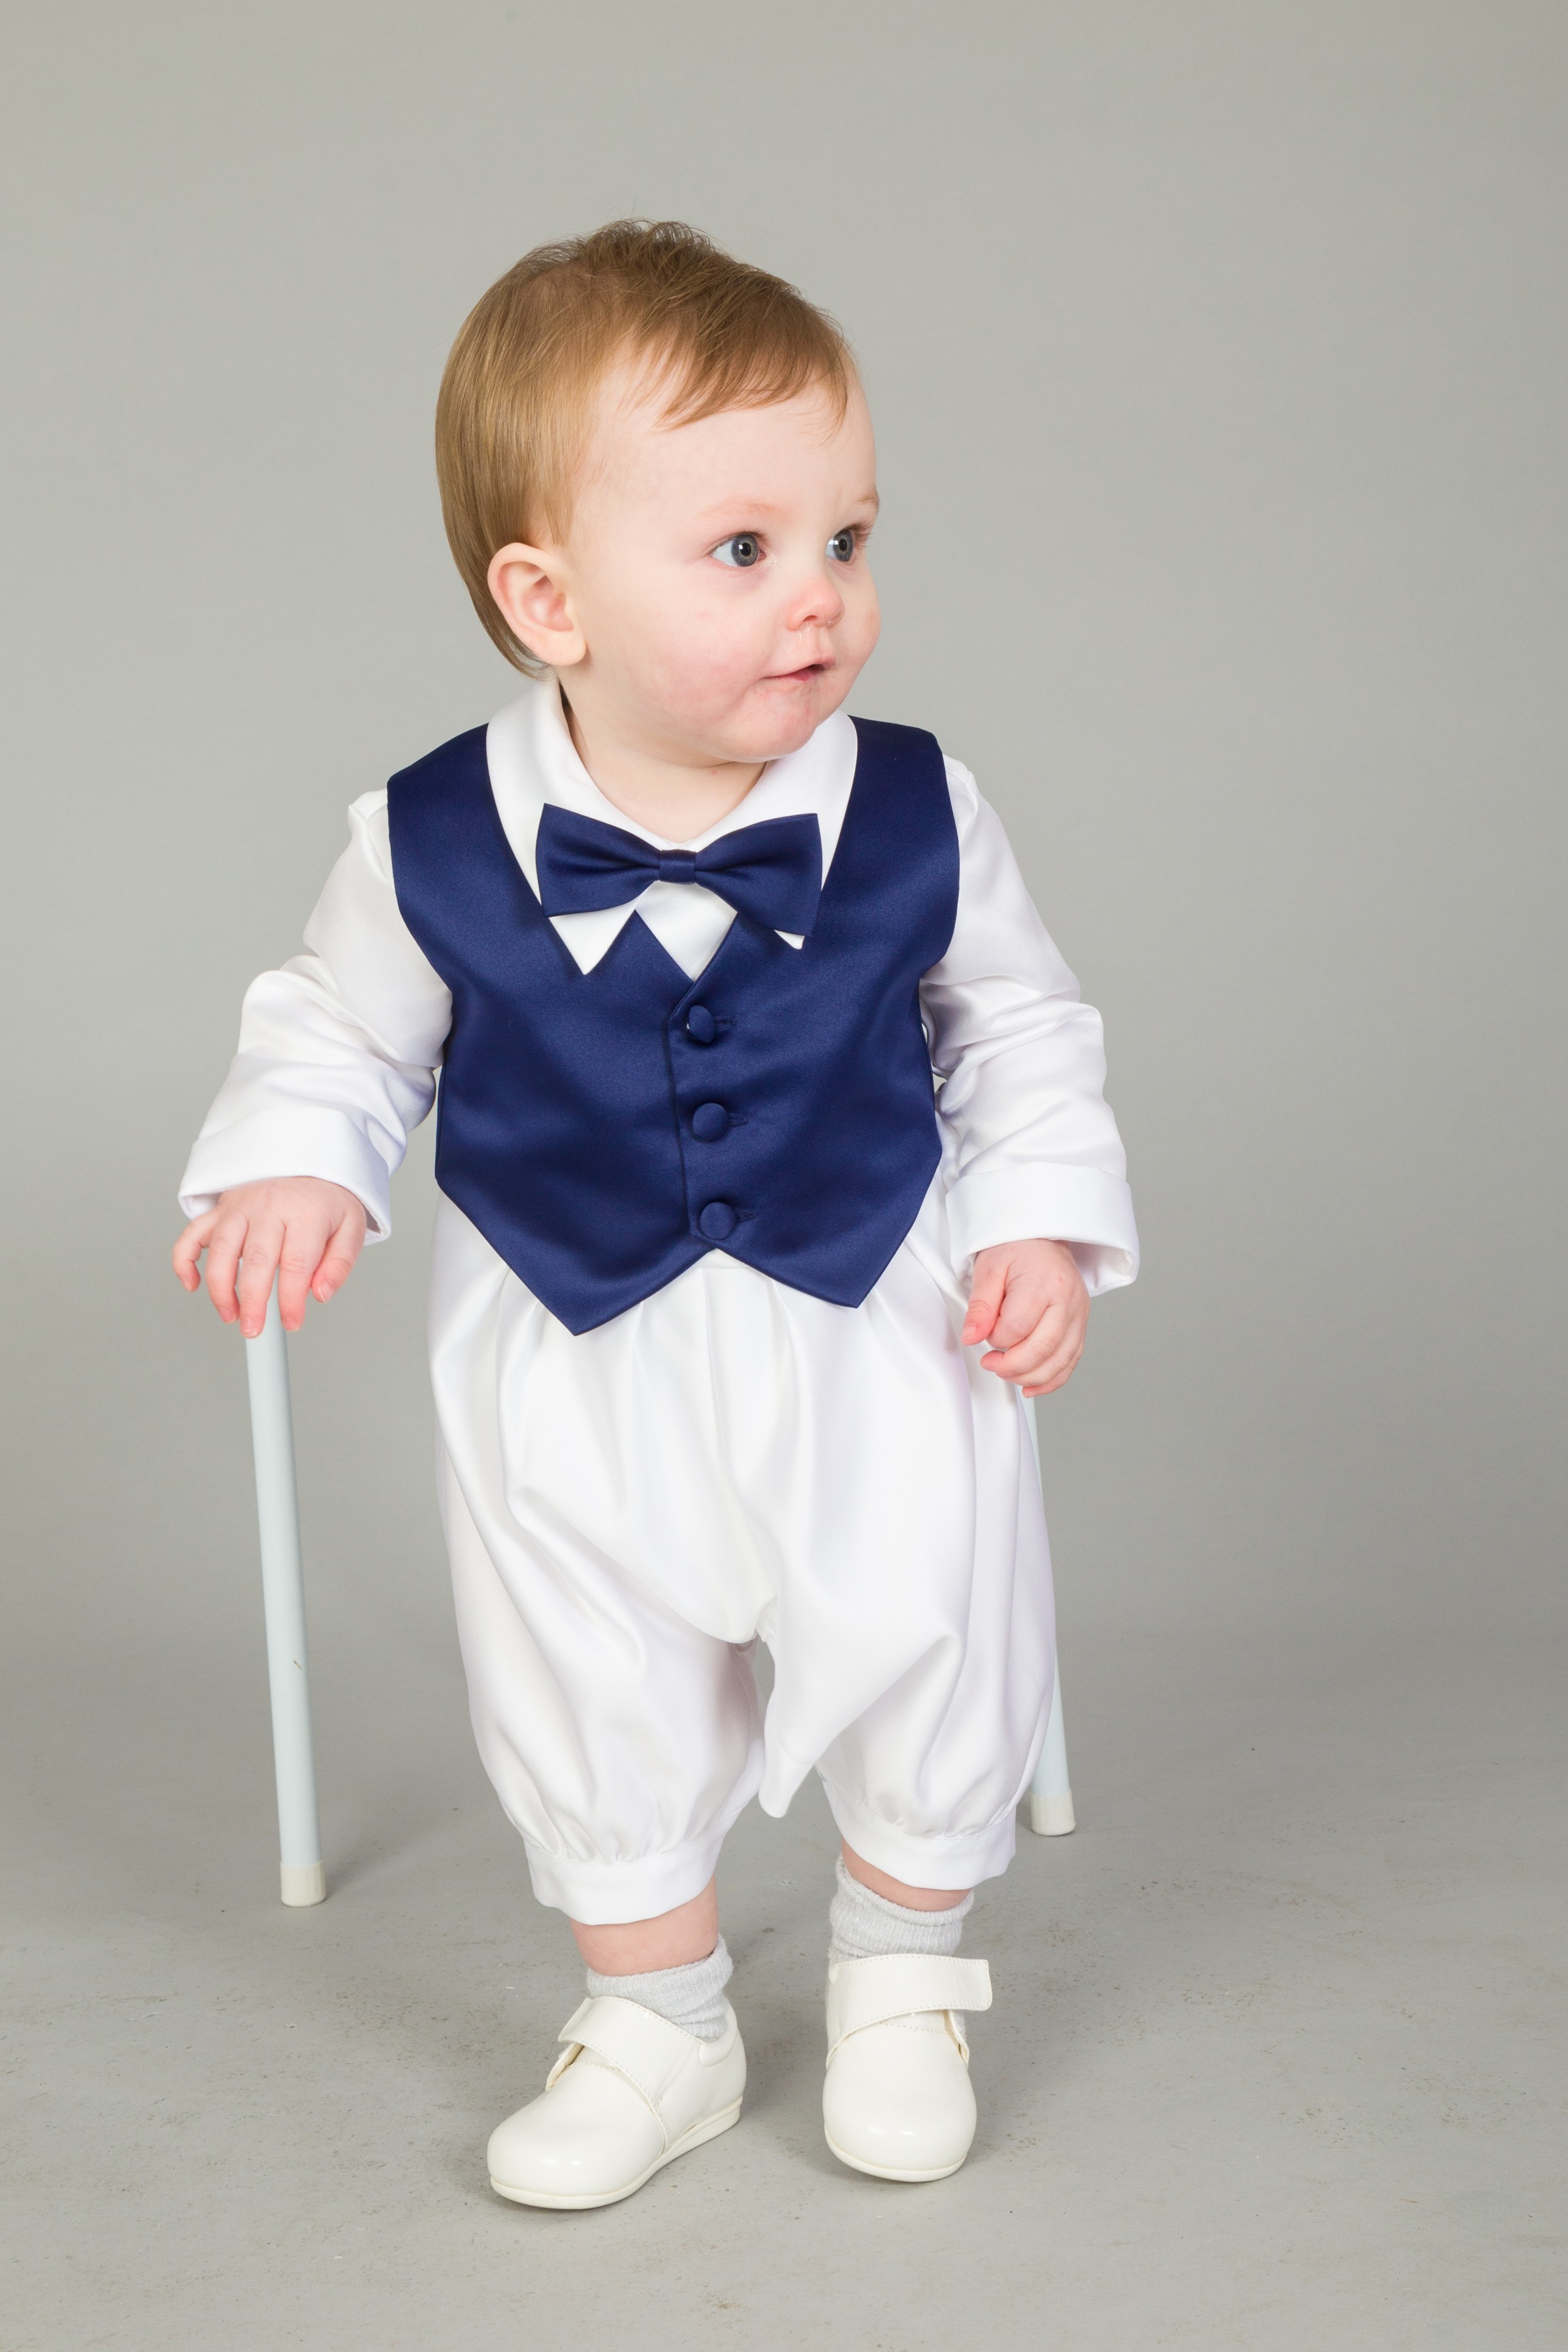 Baby Boys 3 Piece Formal Suit Dicky Bow 3 6 12 18 months Christening wedding